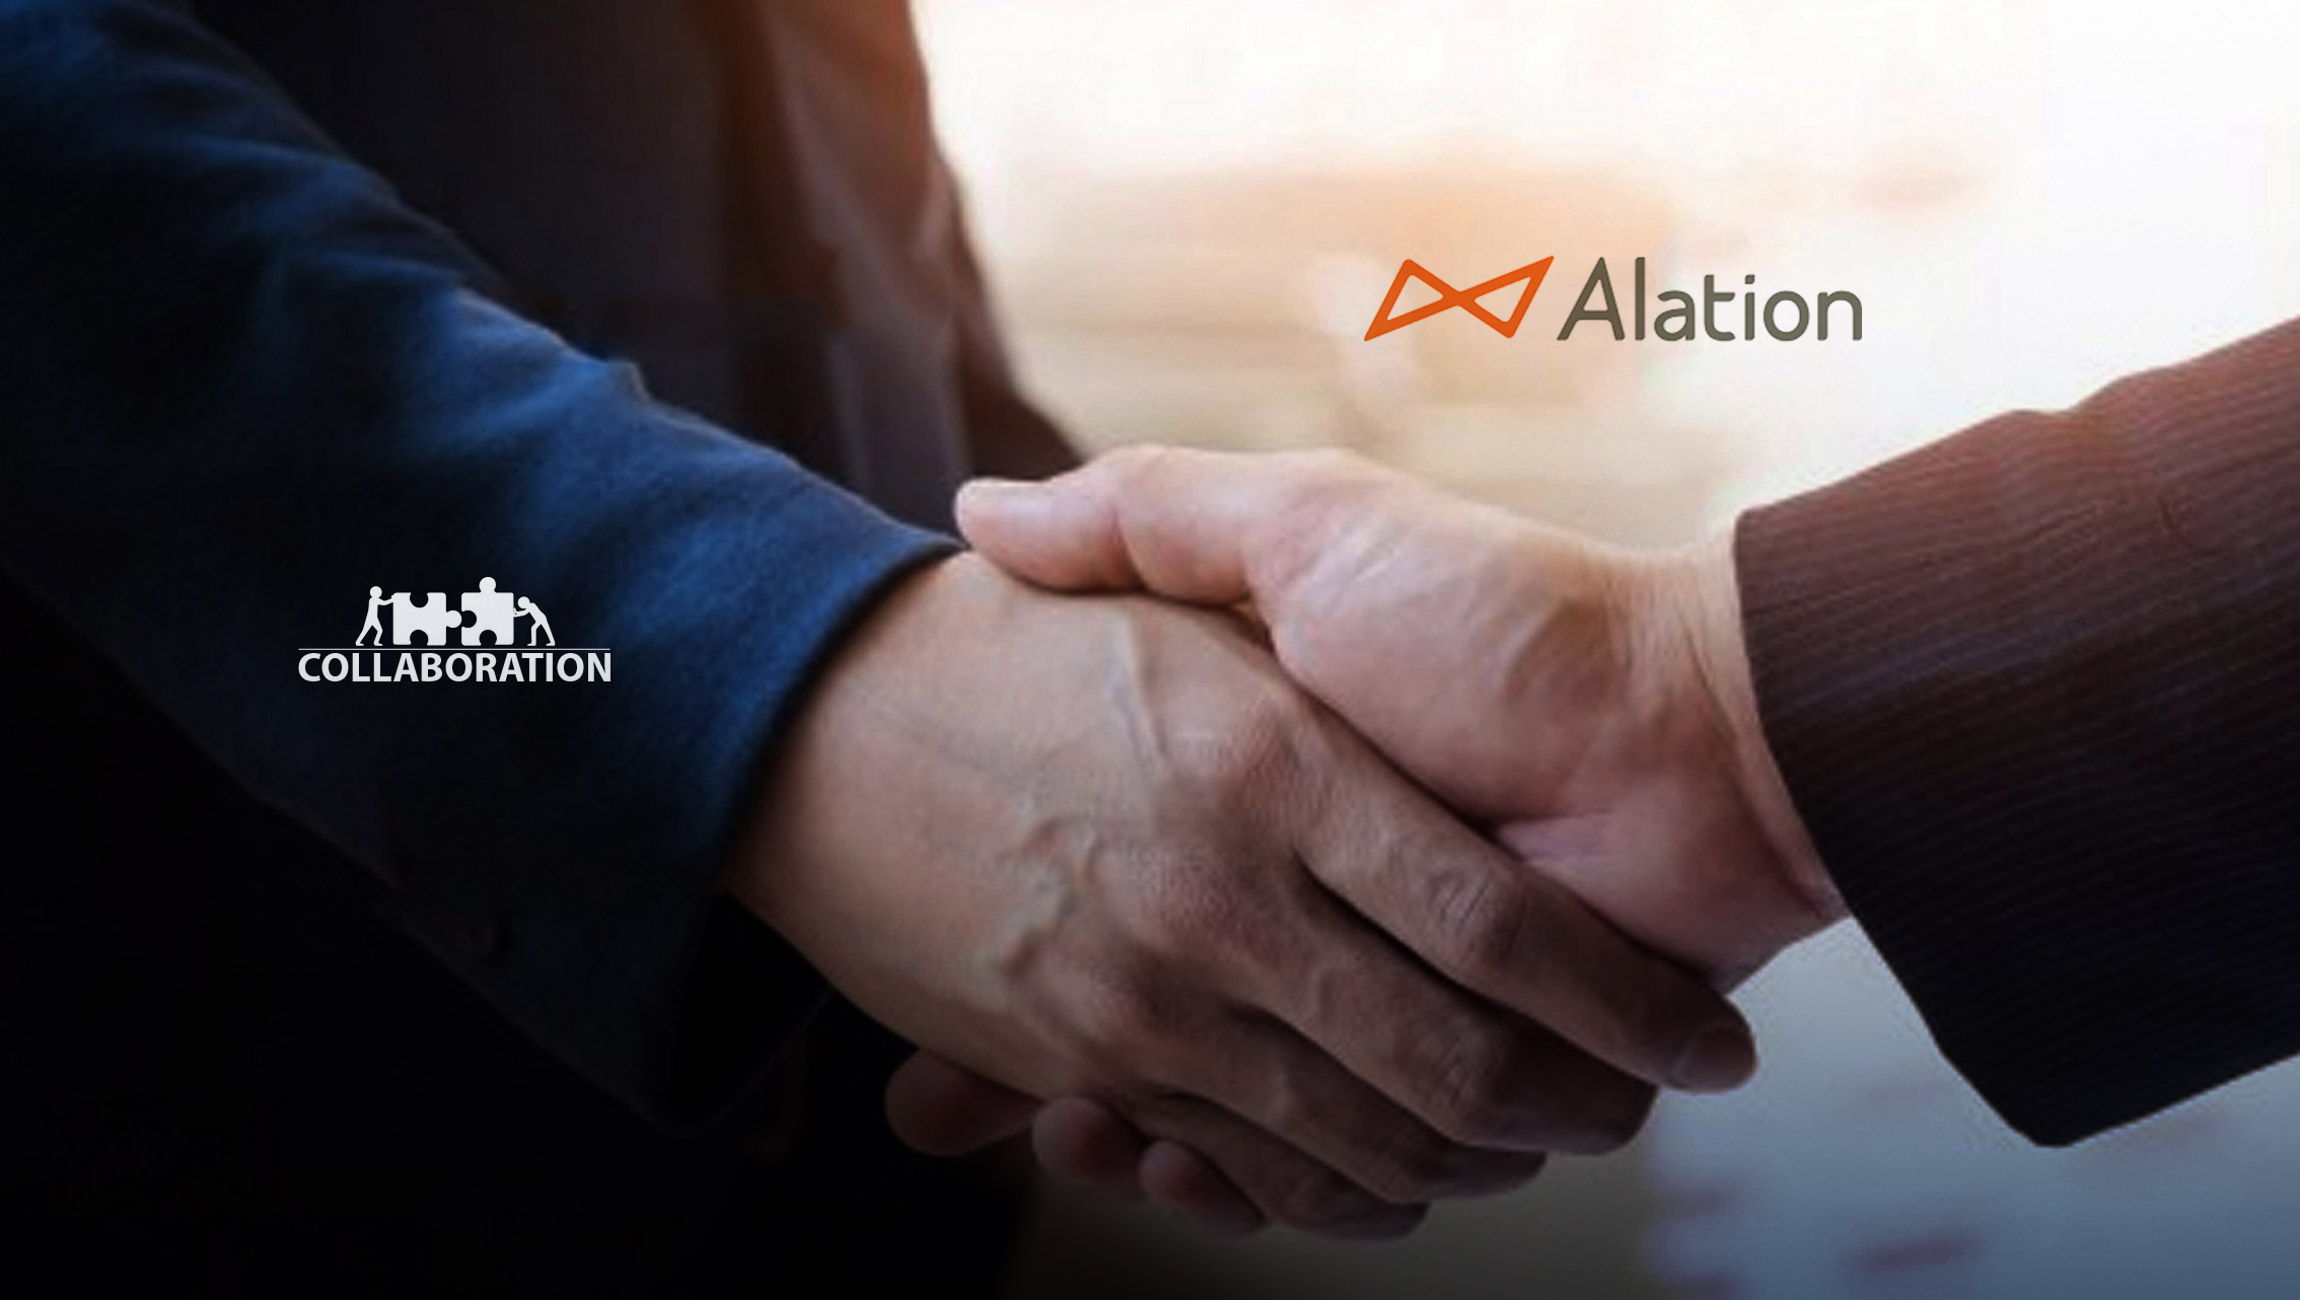 Alation Partners With Dataiku to Accelerate and Democratize Data-Driven Insights